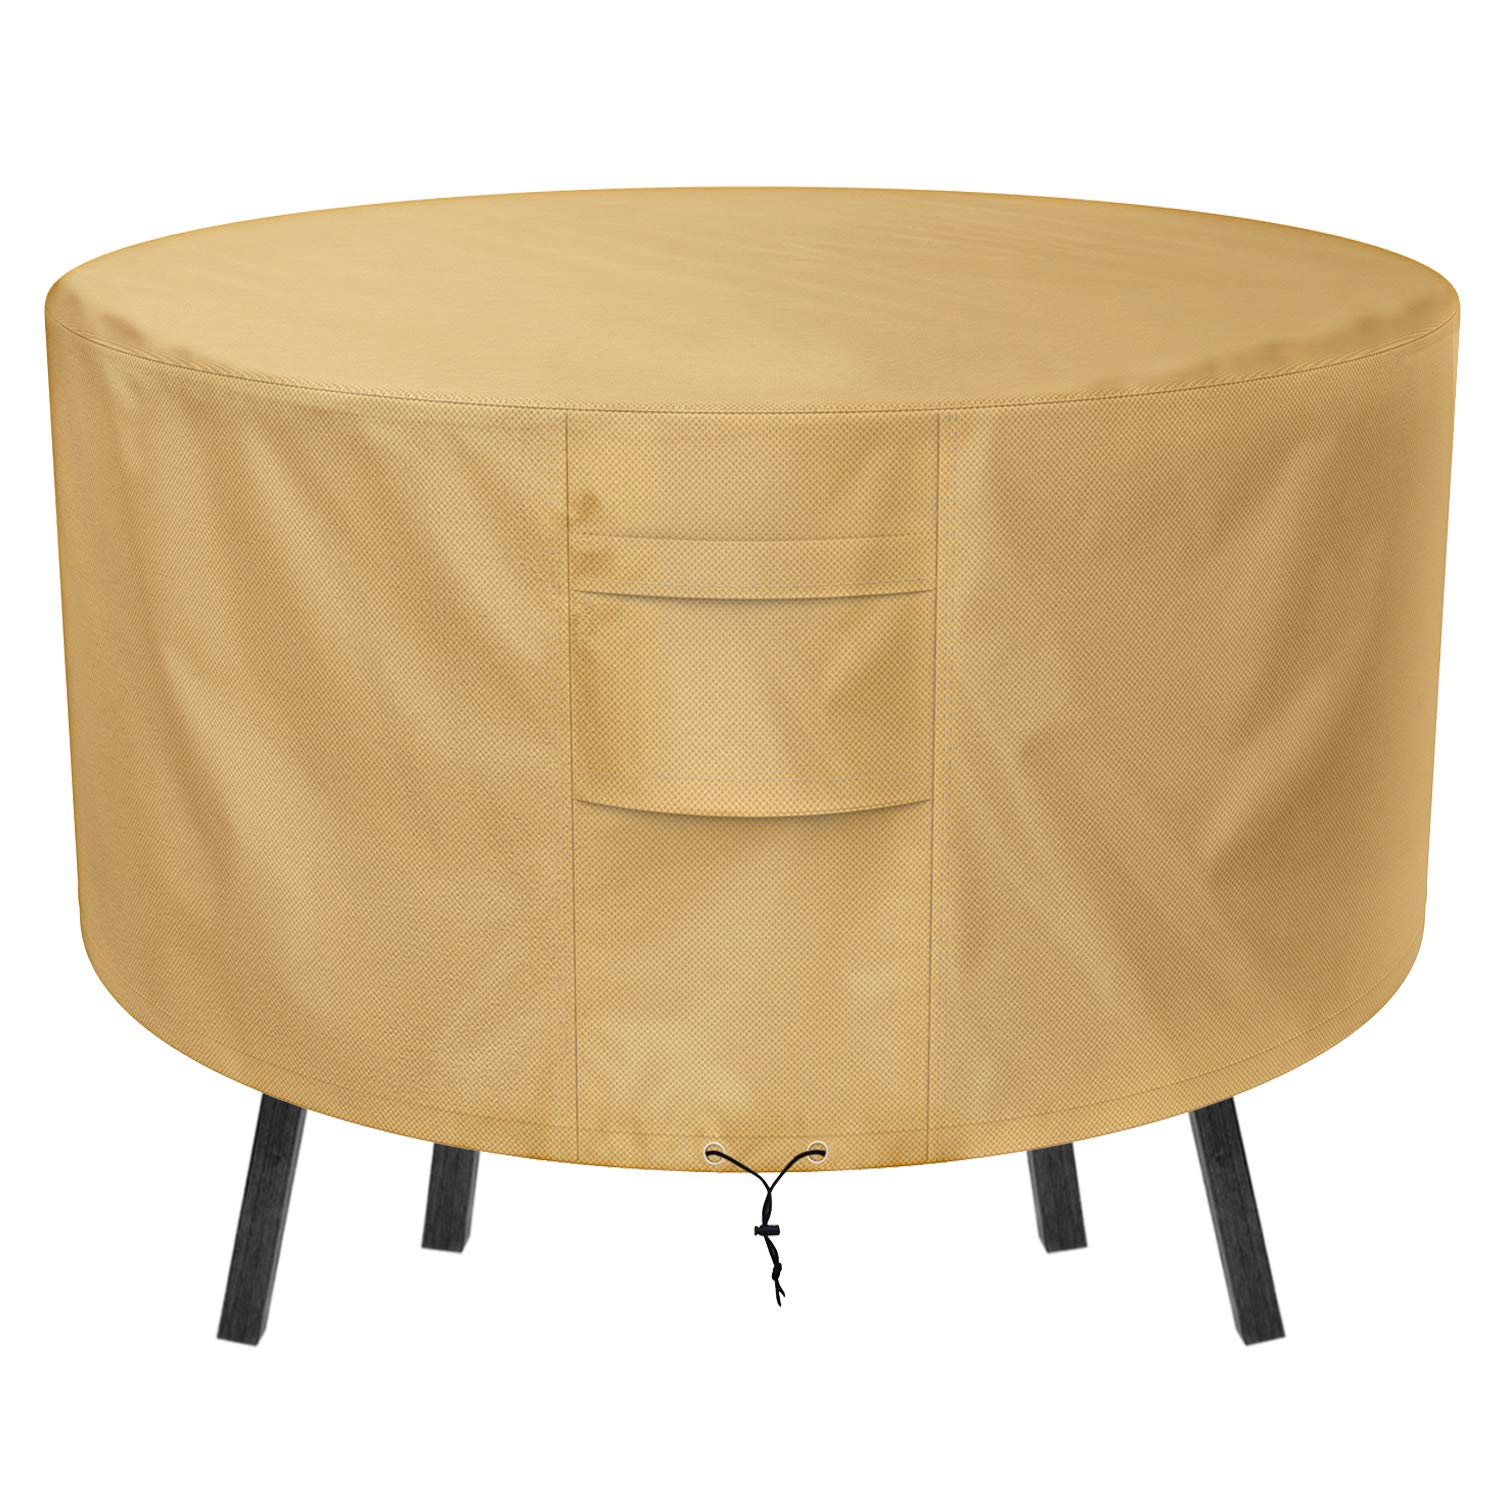 Sunkorto Patio Table Cover, 50 Inch Round Table Furniture Cover Waterproof & Wear-resistant for Outdoor by Sunkorto